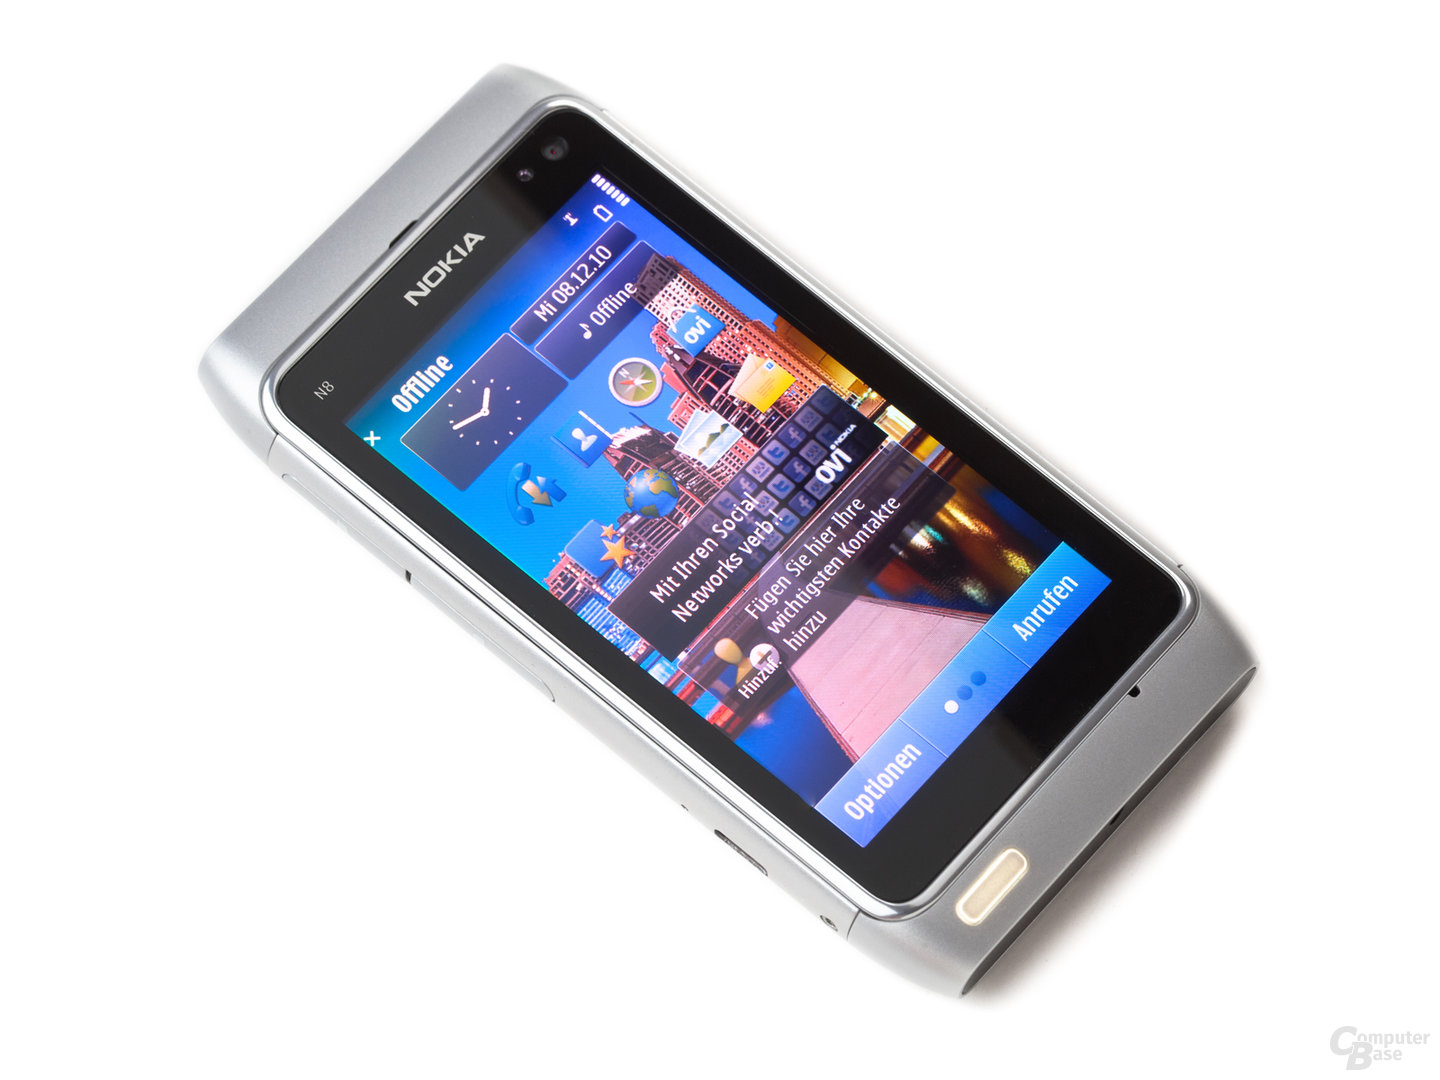 Nokia N8-00: Display